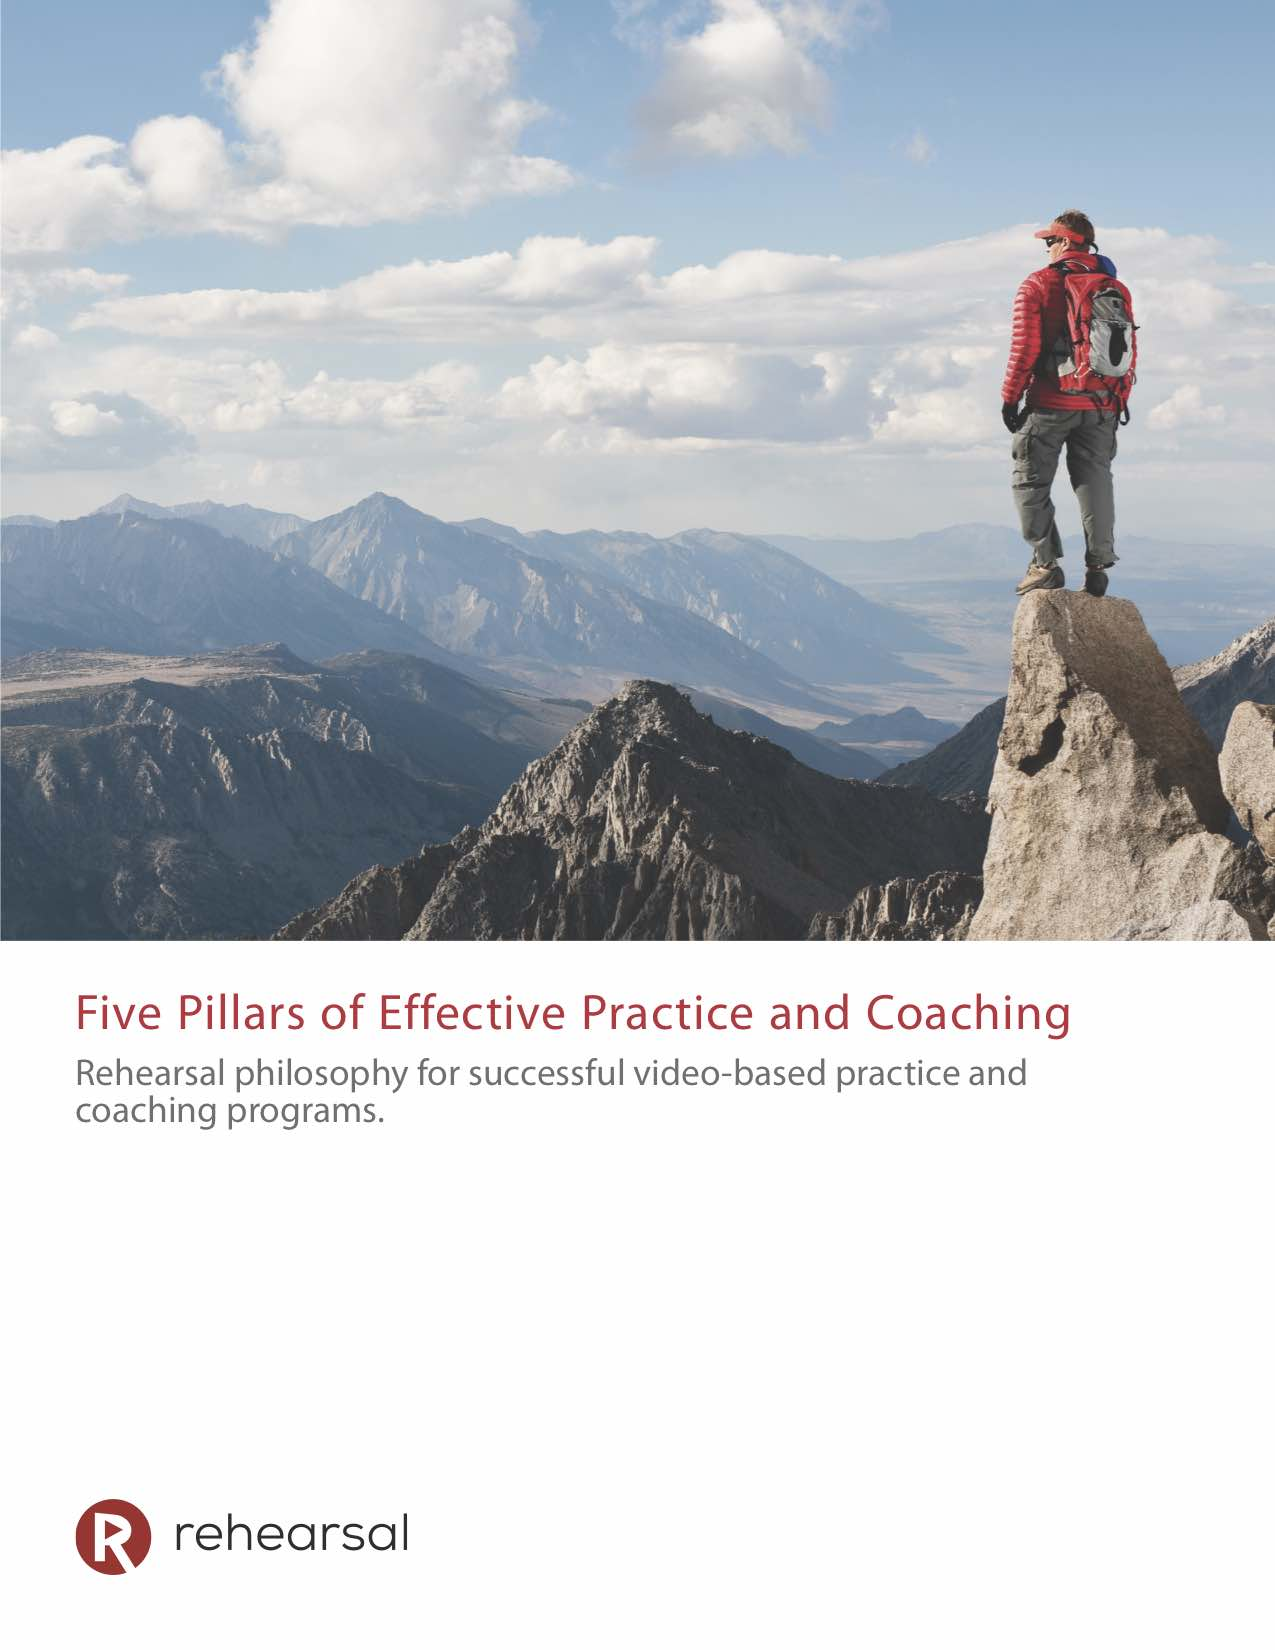 Five Pillars of Effective Practice and Coaching White Paper Cover